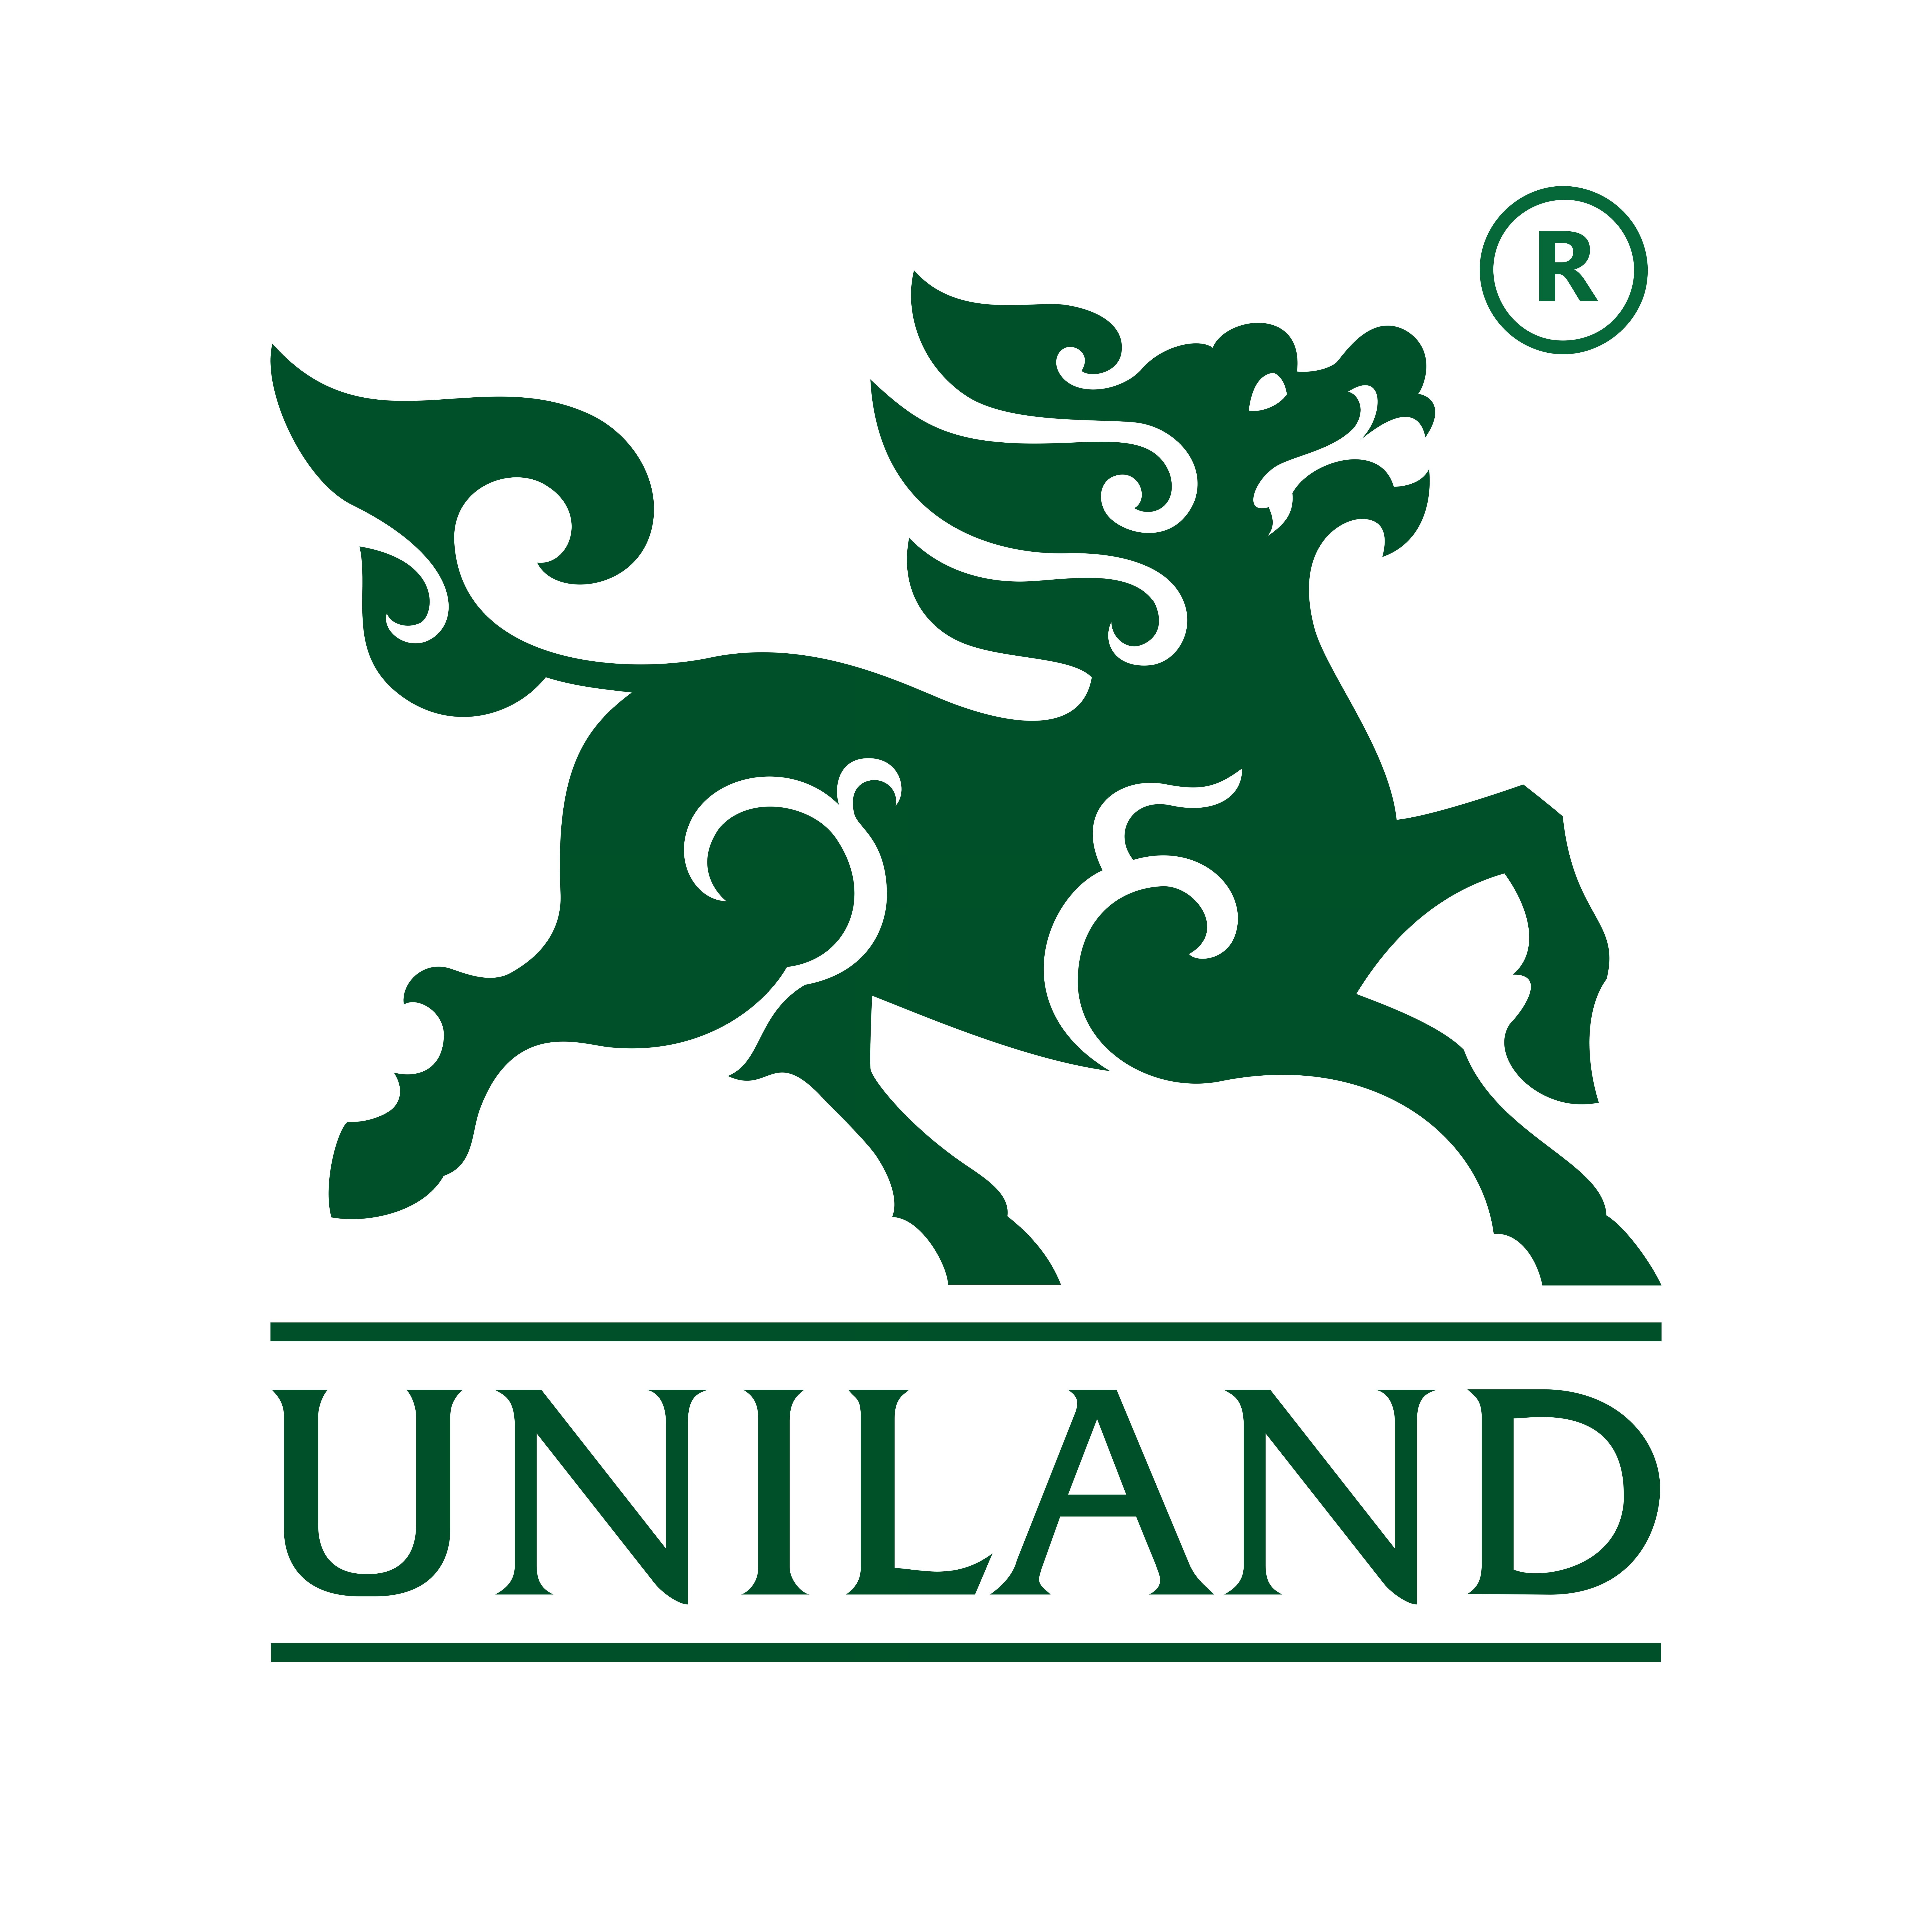 UNILAND REAL ESTATE INVESTMENT JOINT STOCK